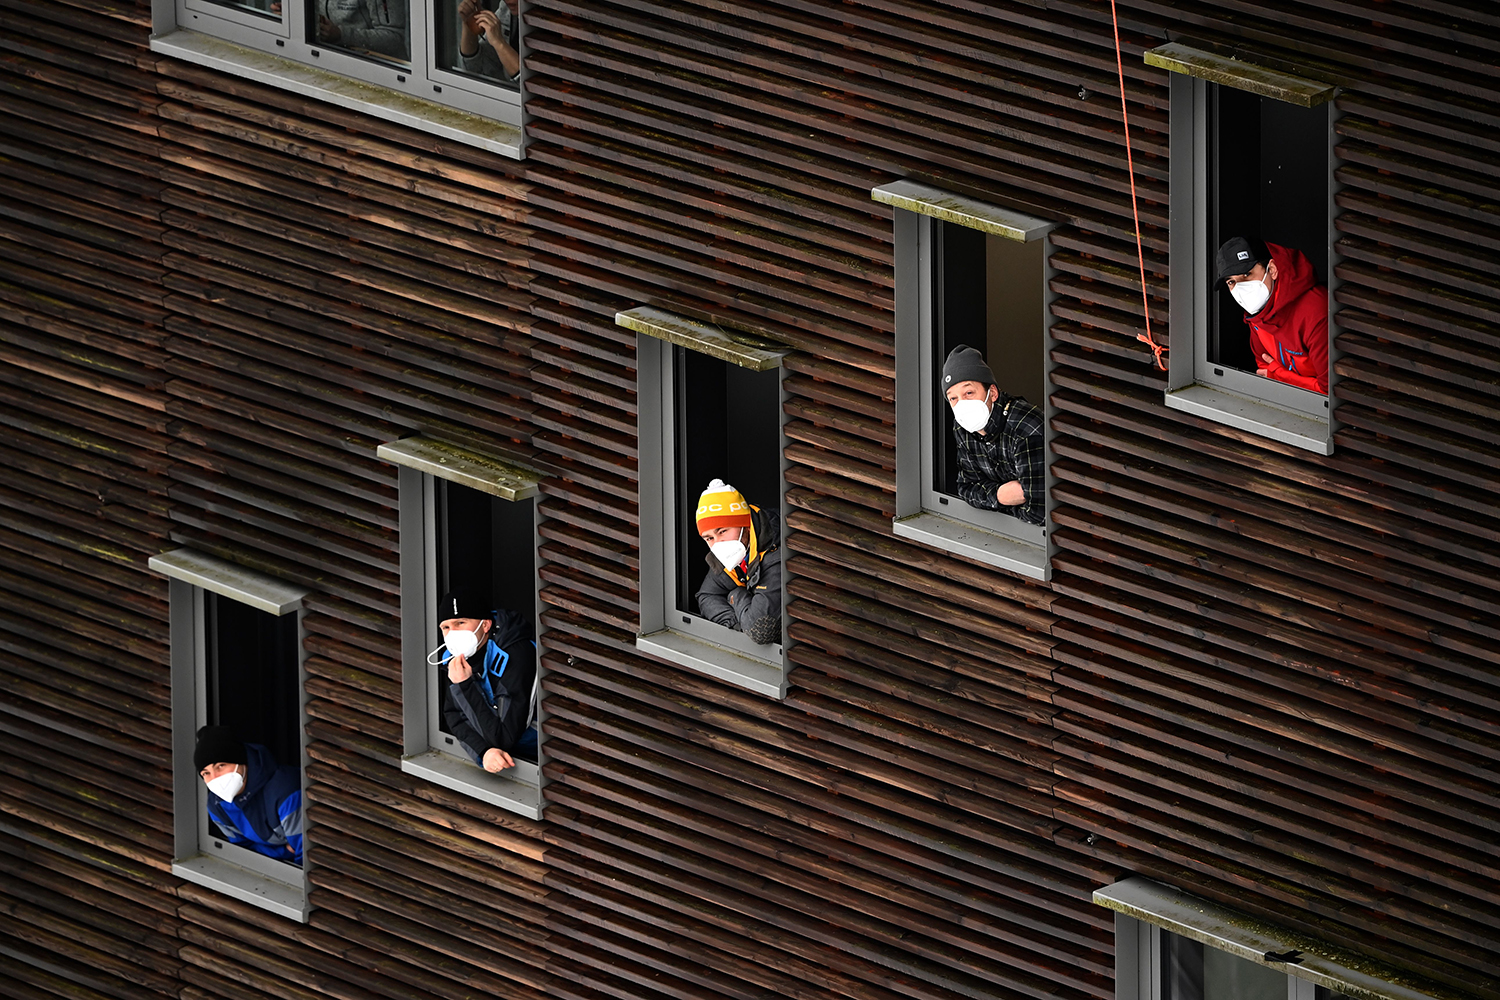 Referees watch ski jumpers during a qualification jump of the FIS Men's Ski Jumping World Cup in Willingen, western Germany, on Jan. 29. INA FASSBENDER/AFP via Getty Images